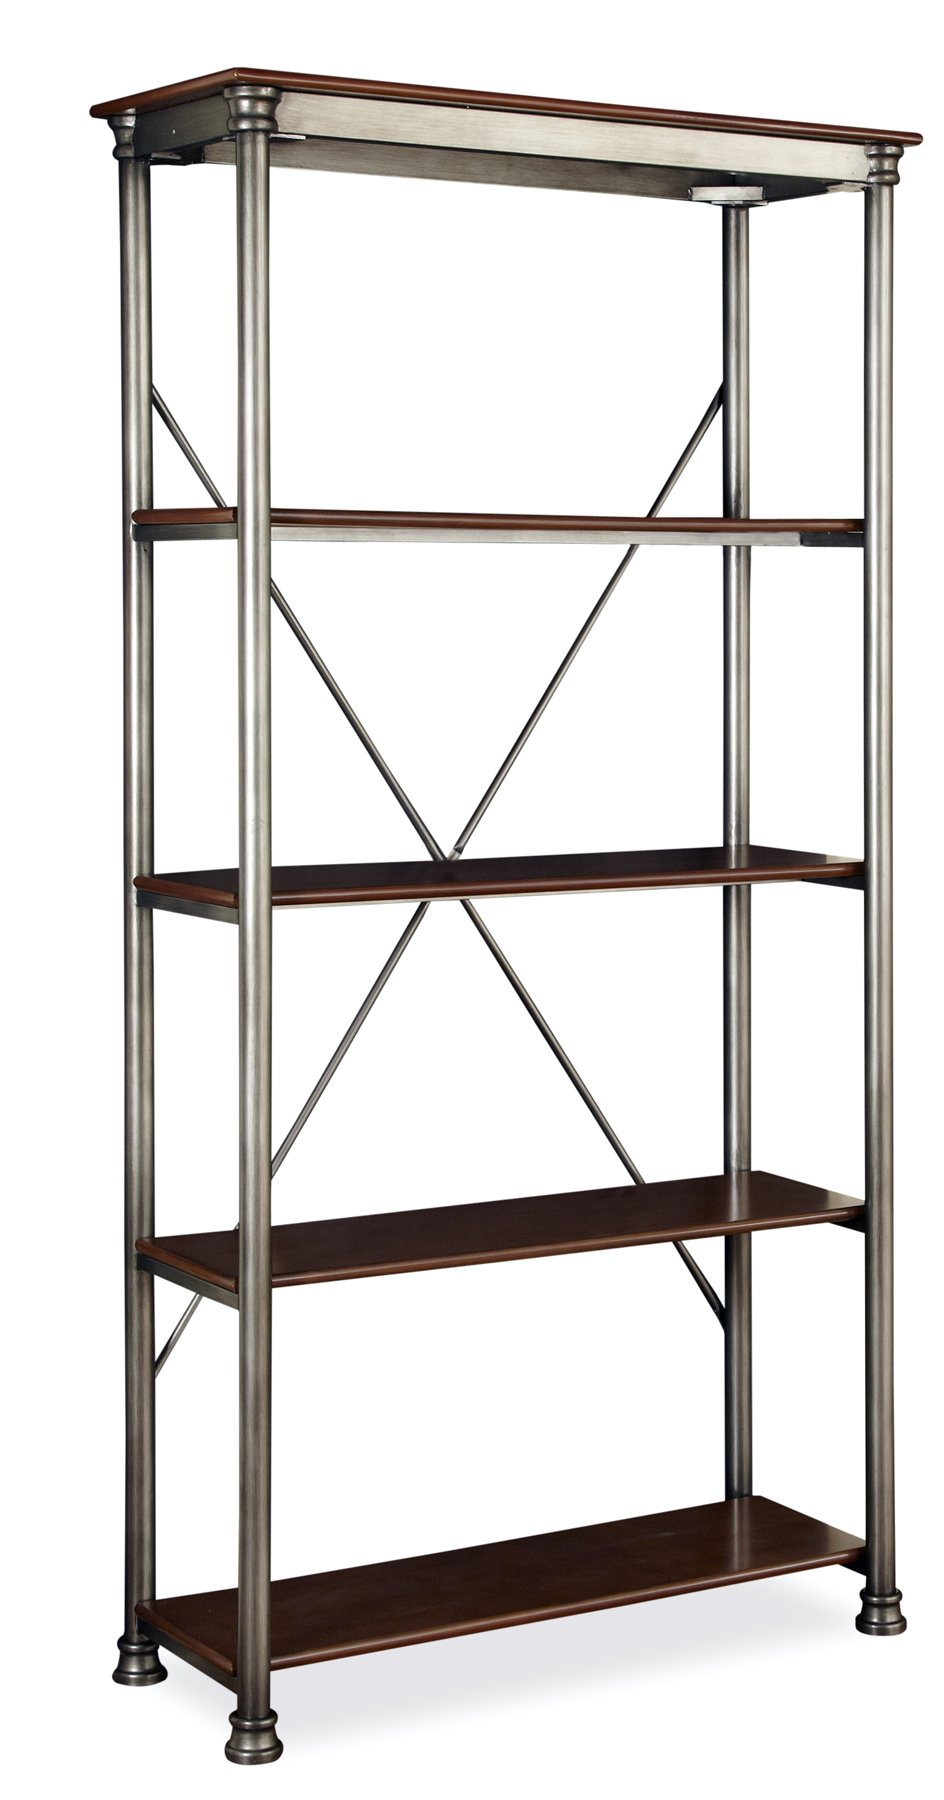 Home Styles 5061-76 The Orleans 5-Tier Multi-function Vintage Shelf